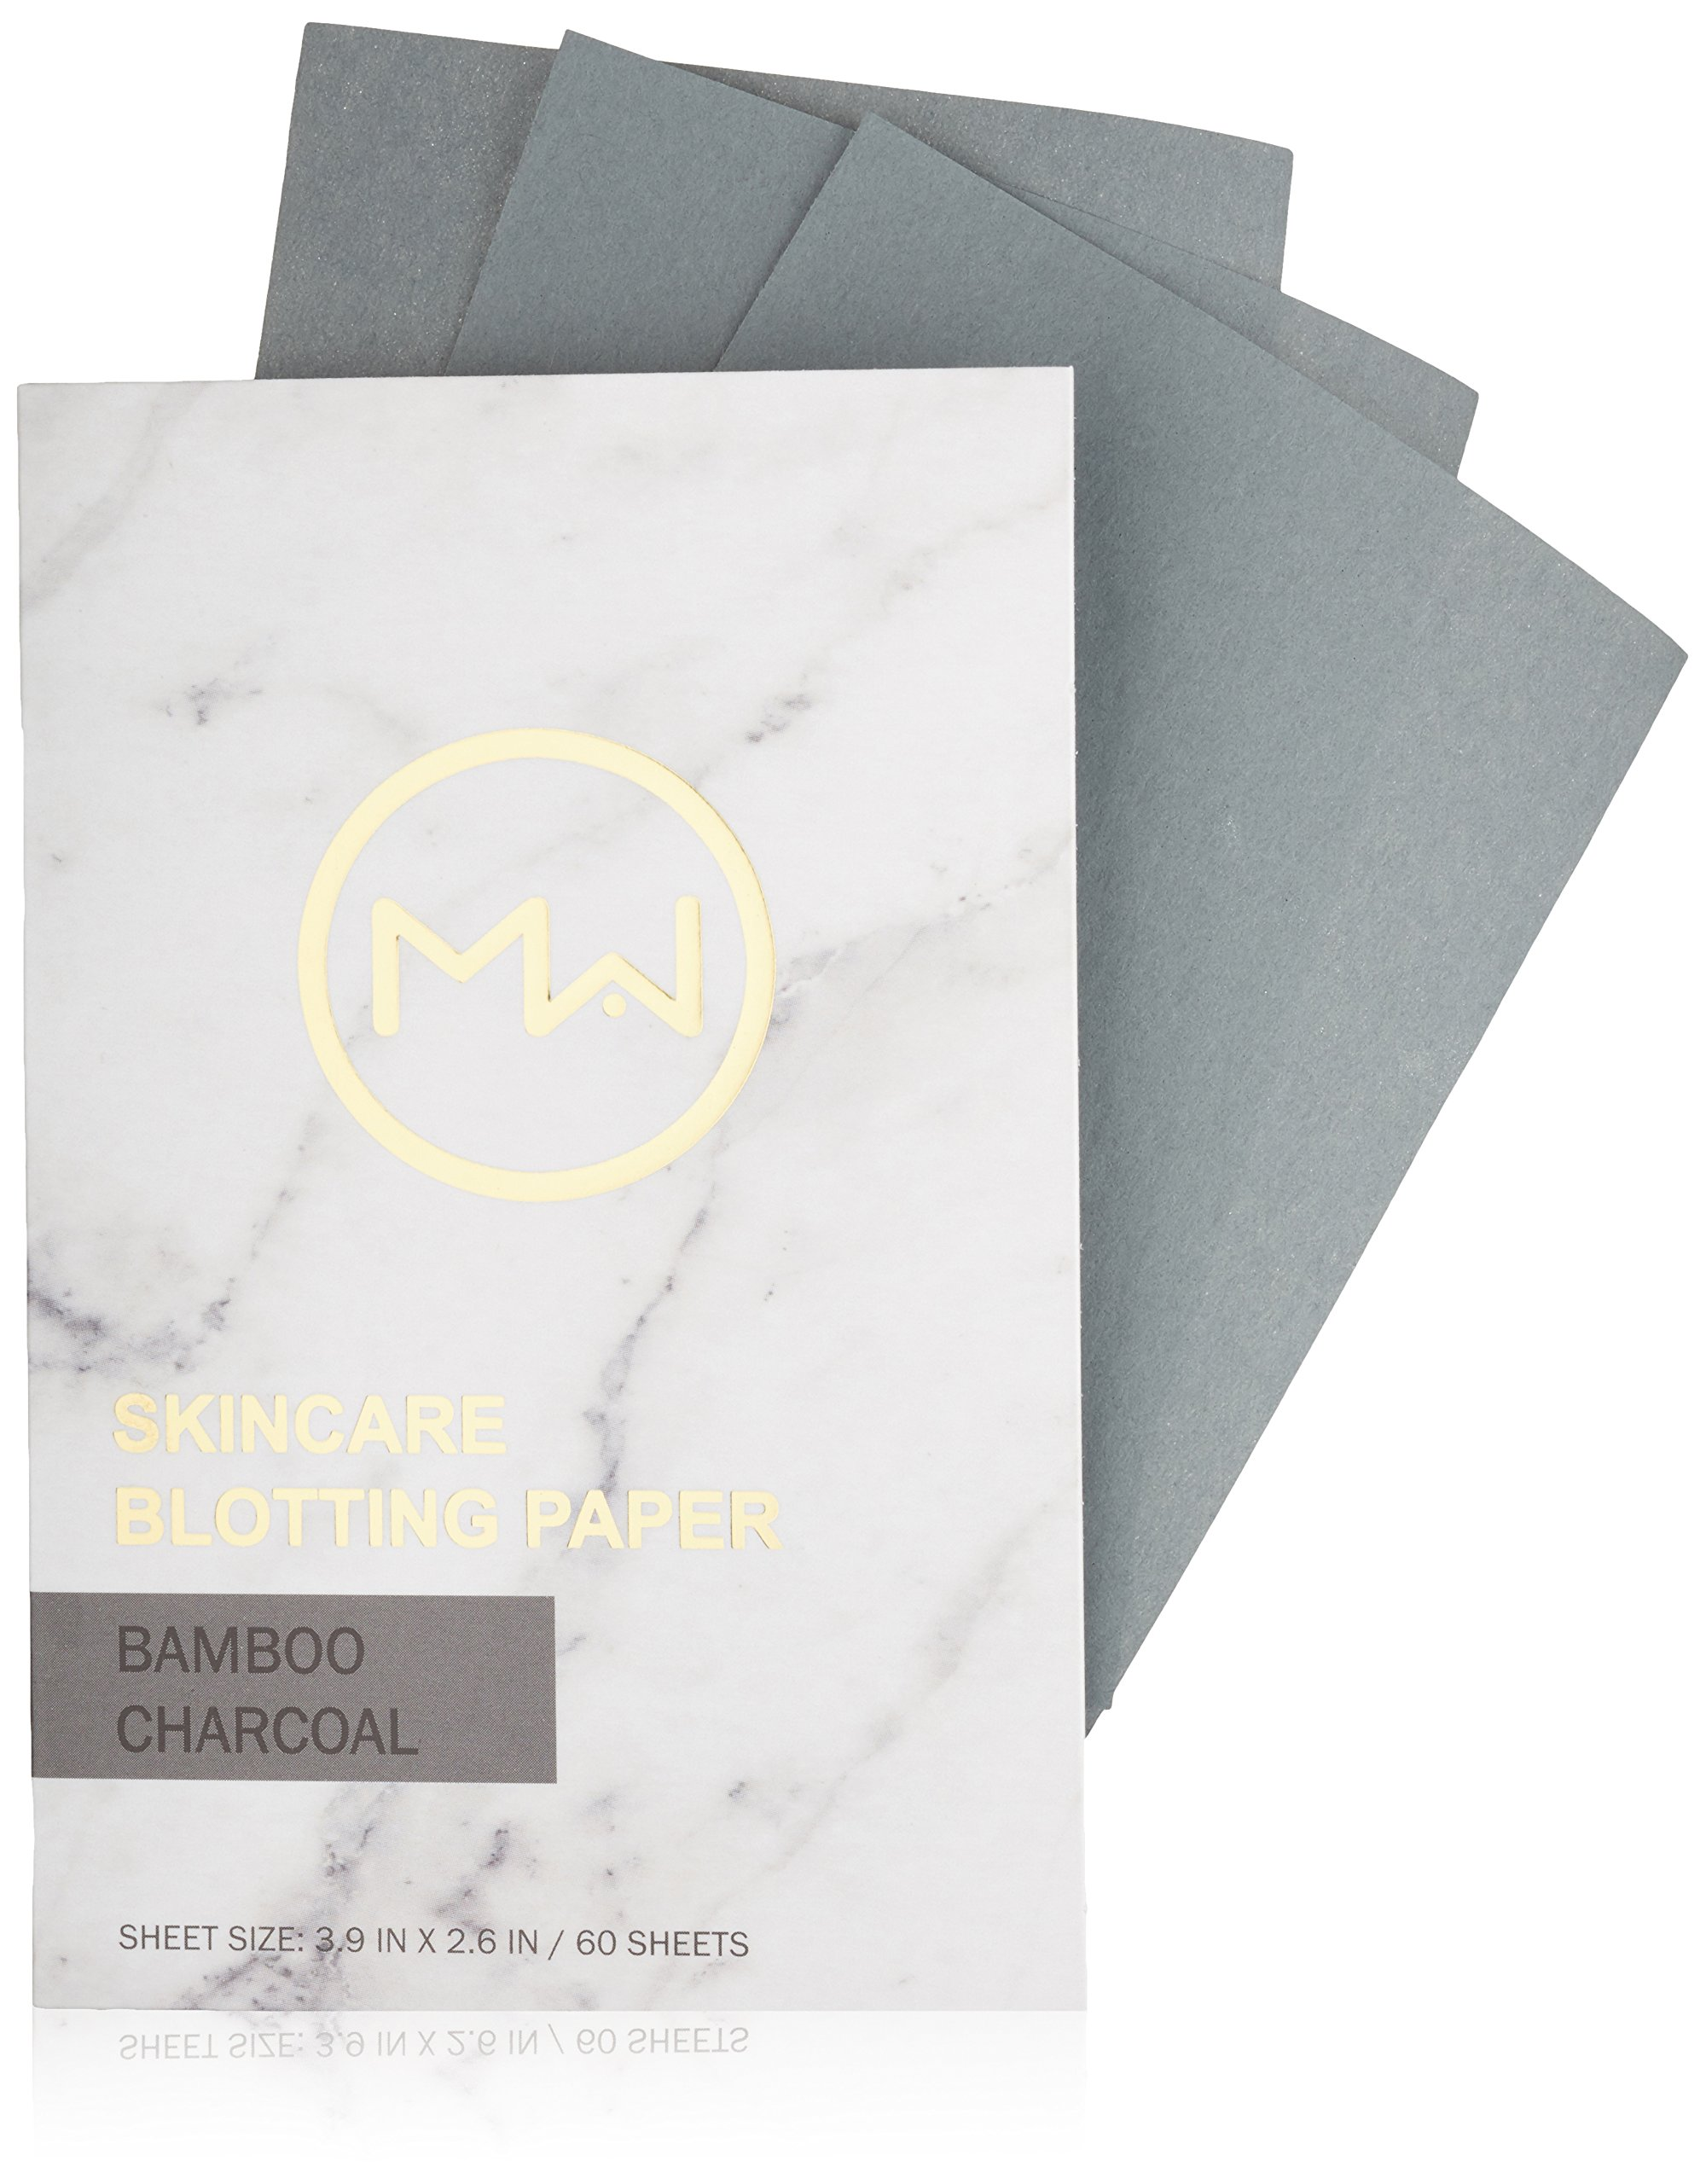 Mai Couture Blotting Paper, Bamboo Charcoal